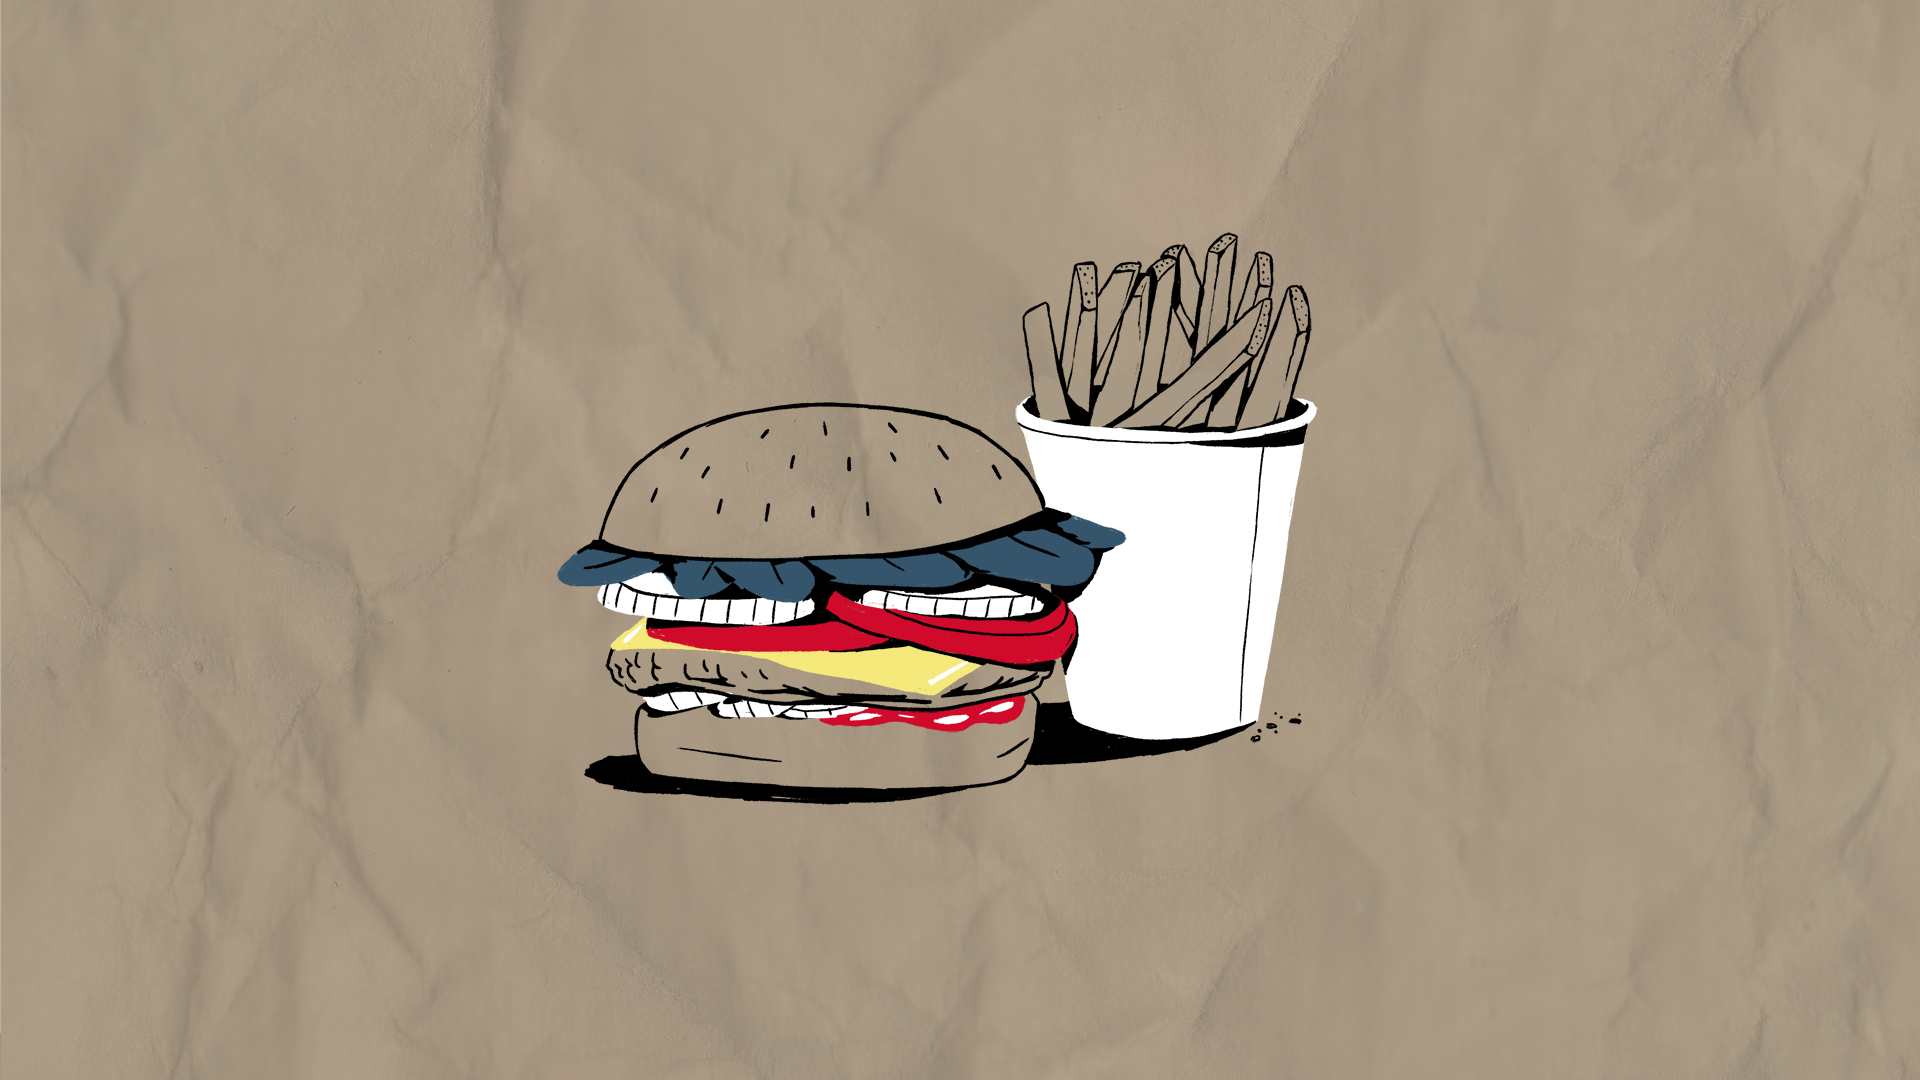 All the Way Burger / Five Guys  Image